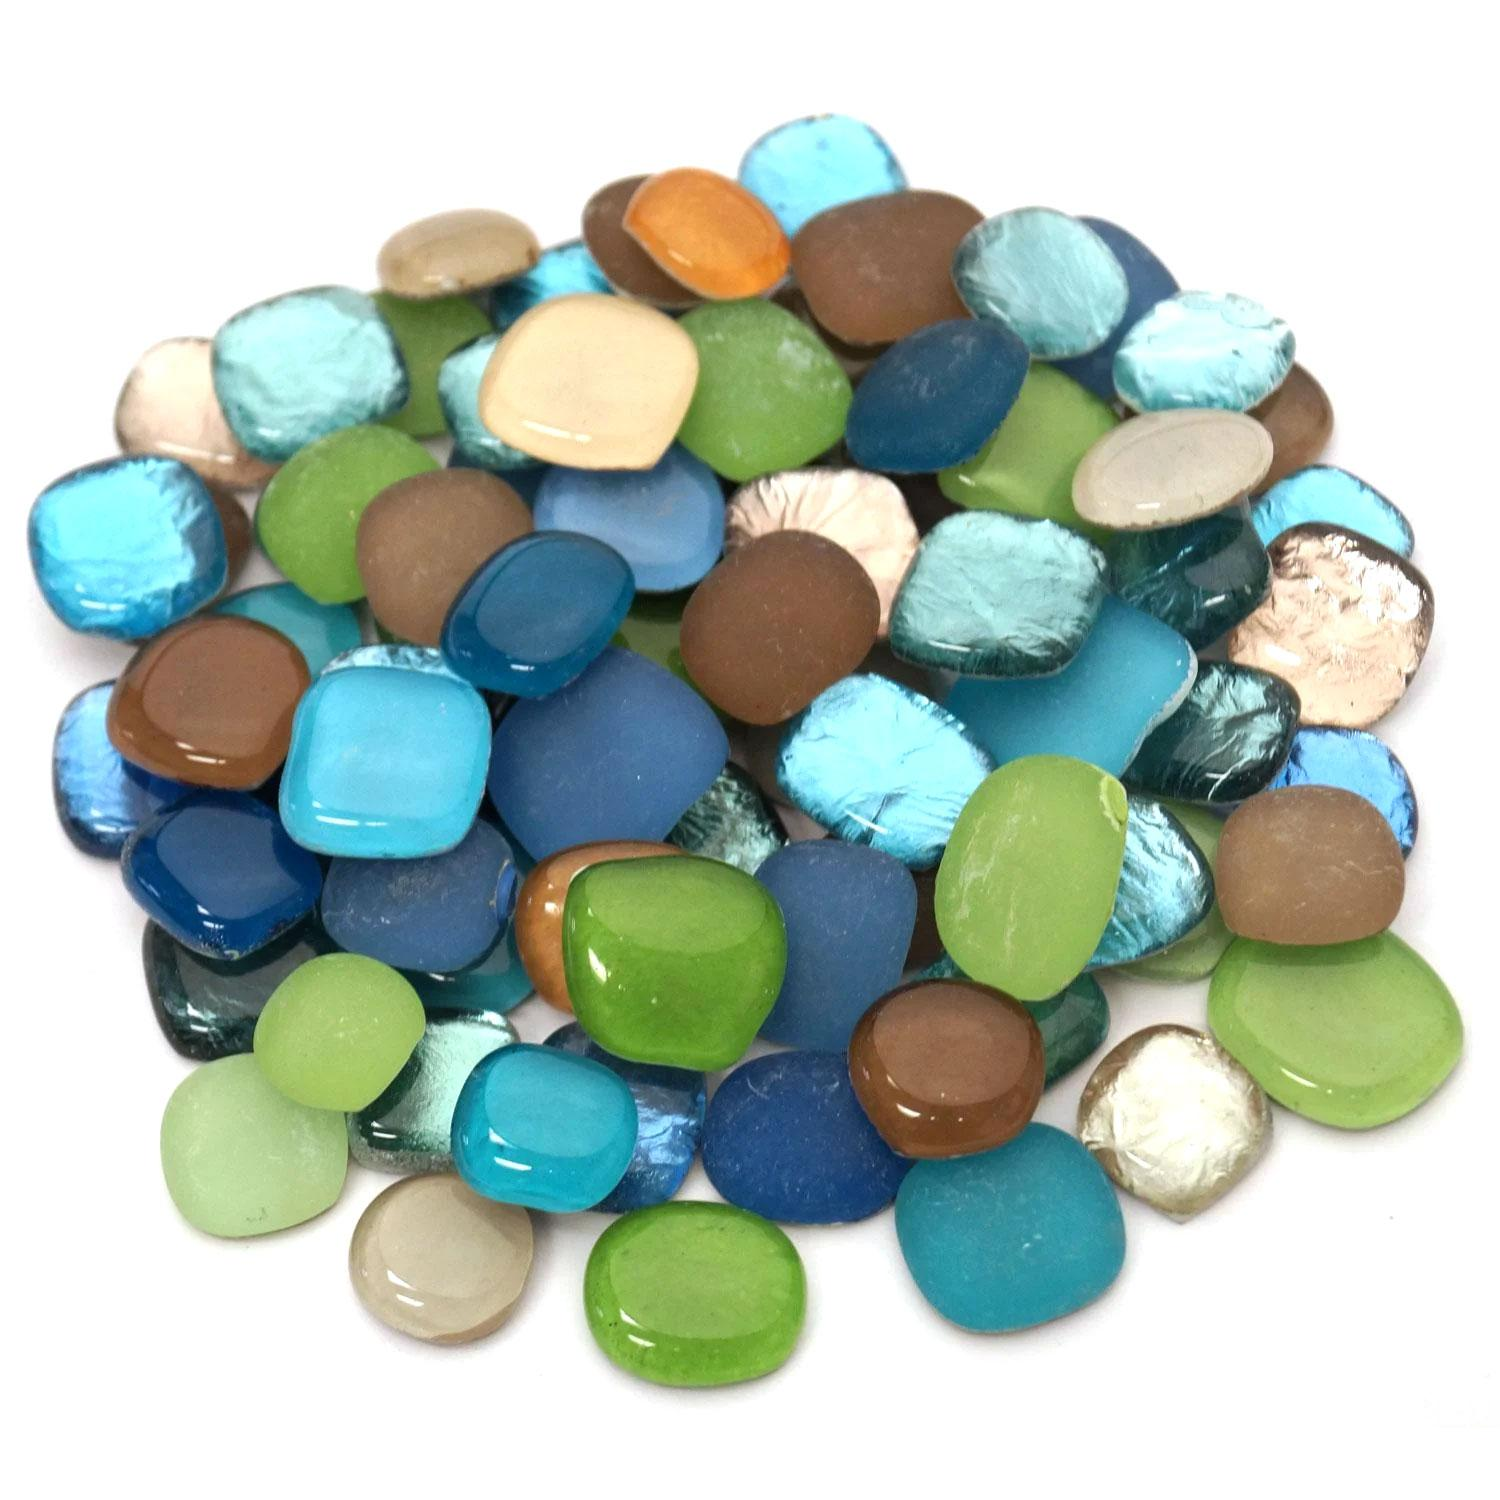 Beachside Mix Pebbles - 1-1/2 lb